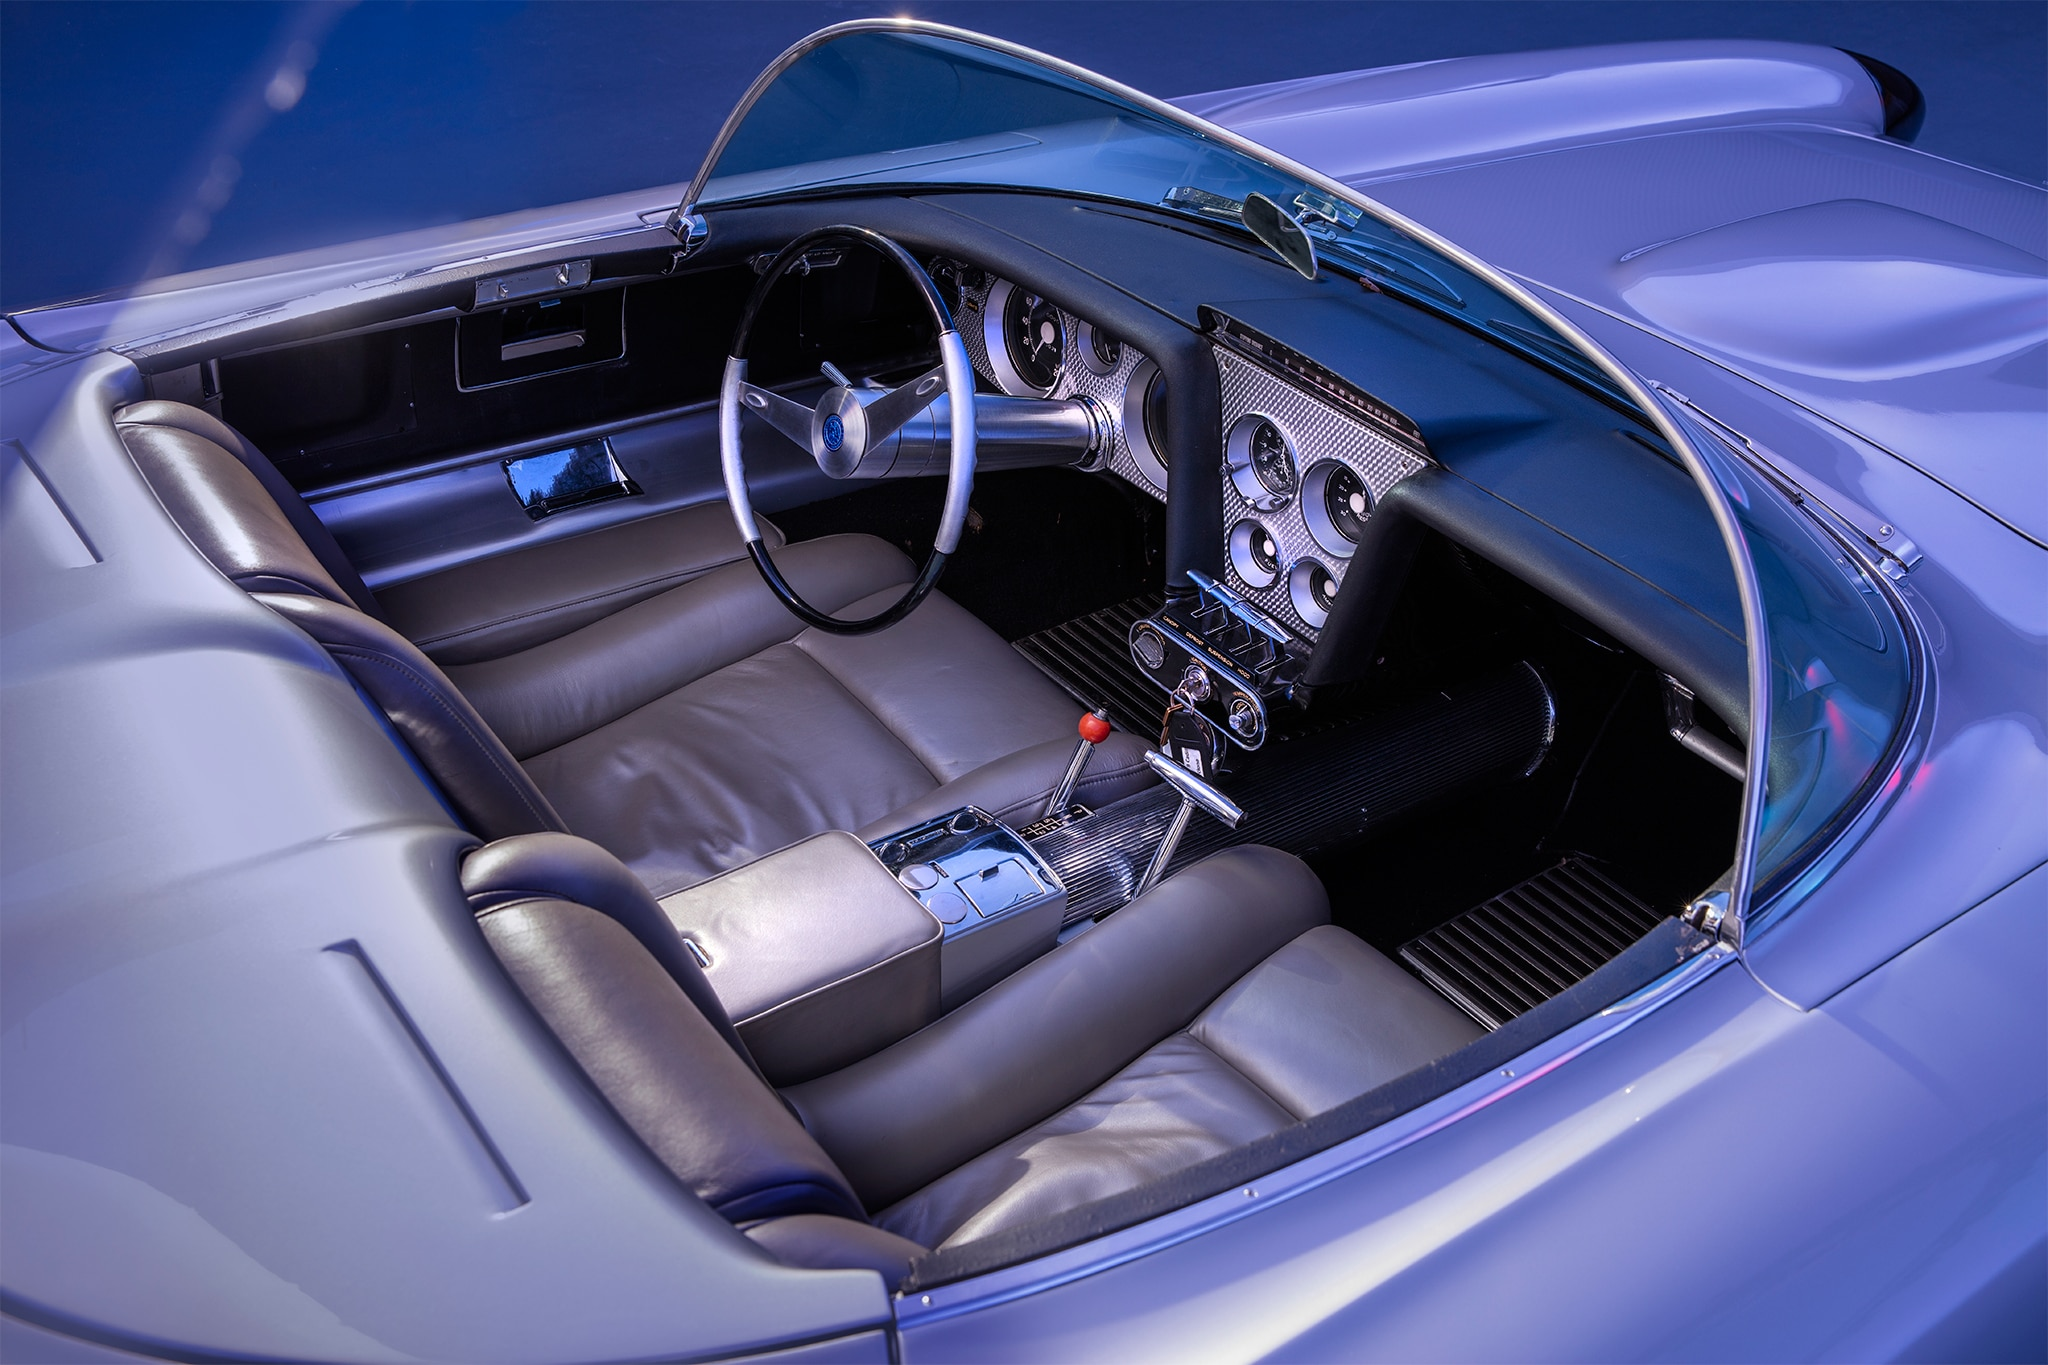 http://st.automobilemag.com/uploads/sites/11/2016/11/Cadillac-Cyclone-cabin.jpg